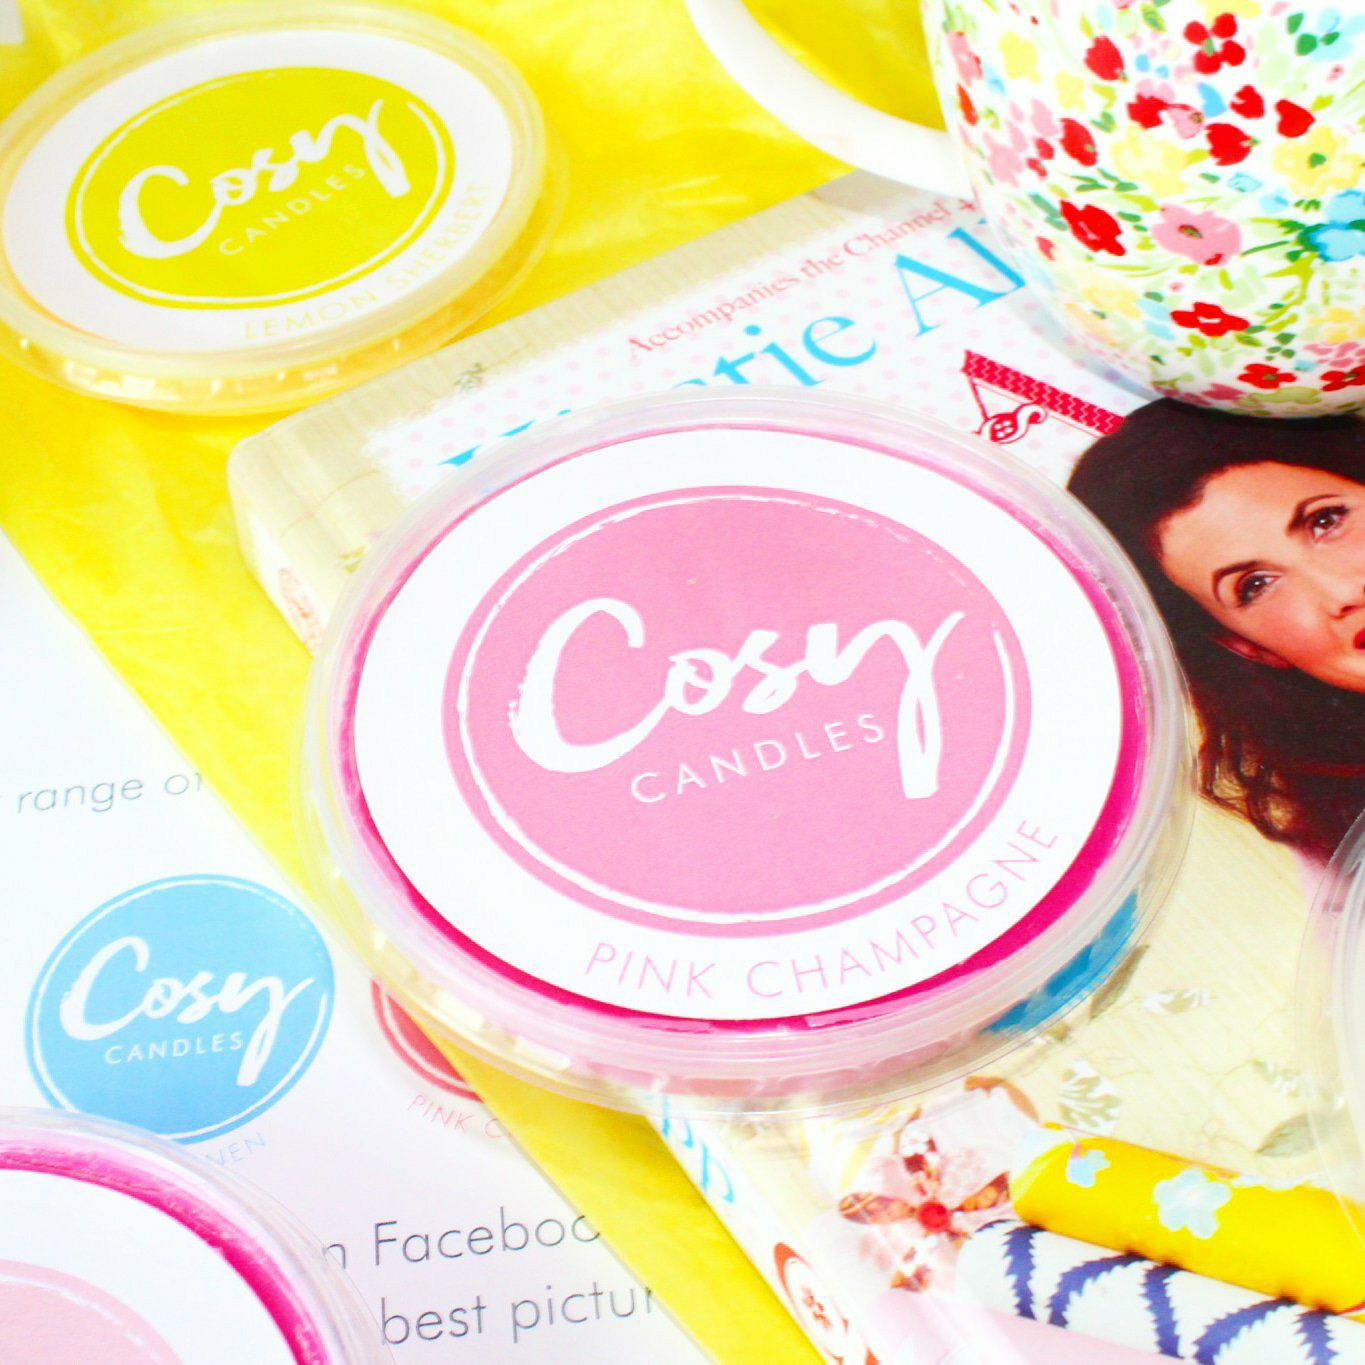 Cosy Candles | The UK's No. 1 Wax Melts Subscription